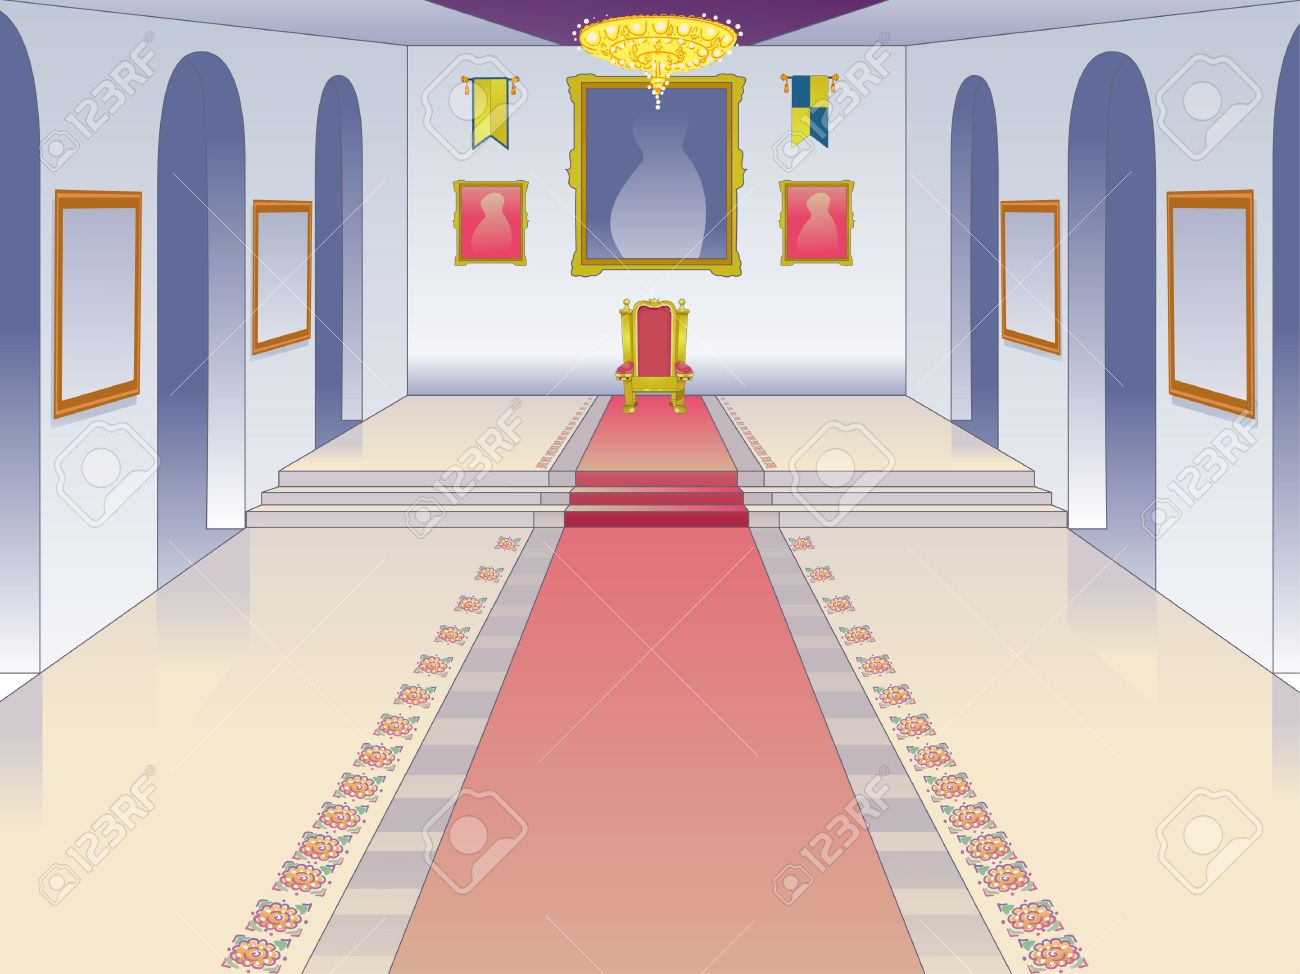 Throne Room Clipart.